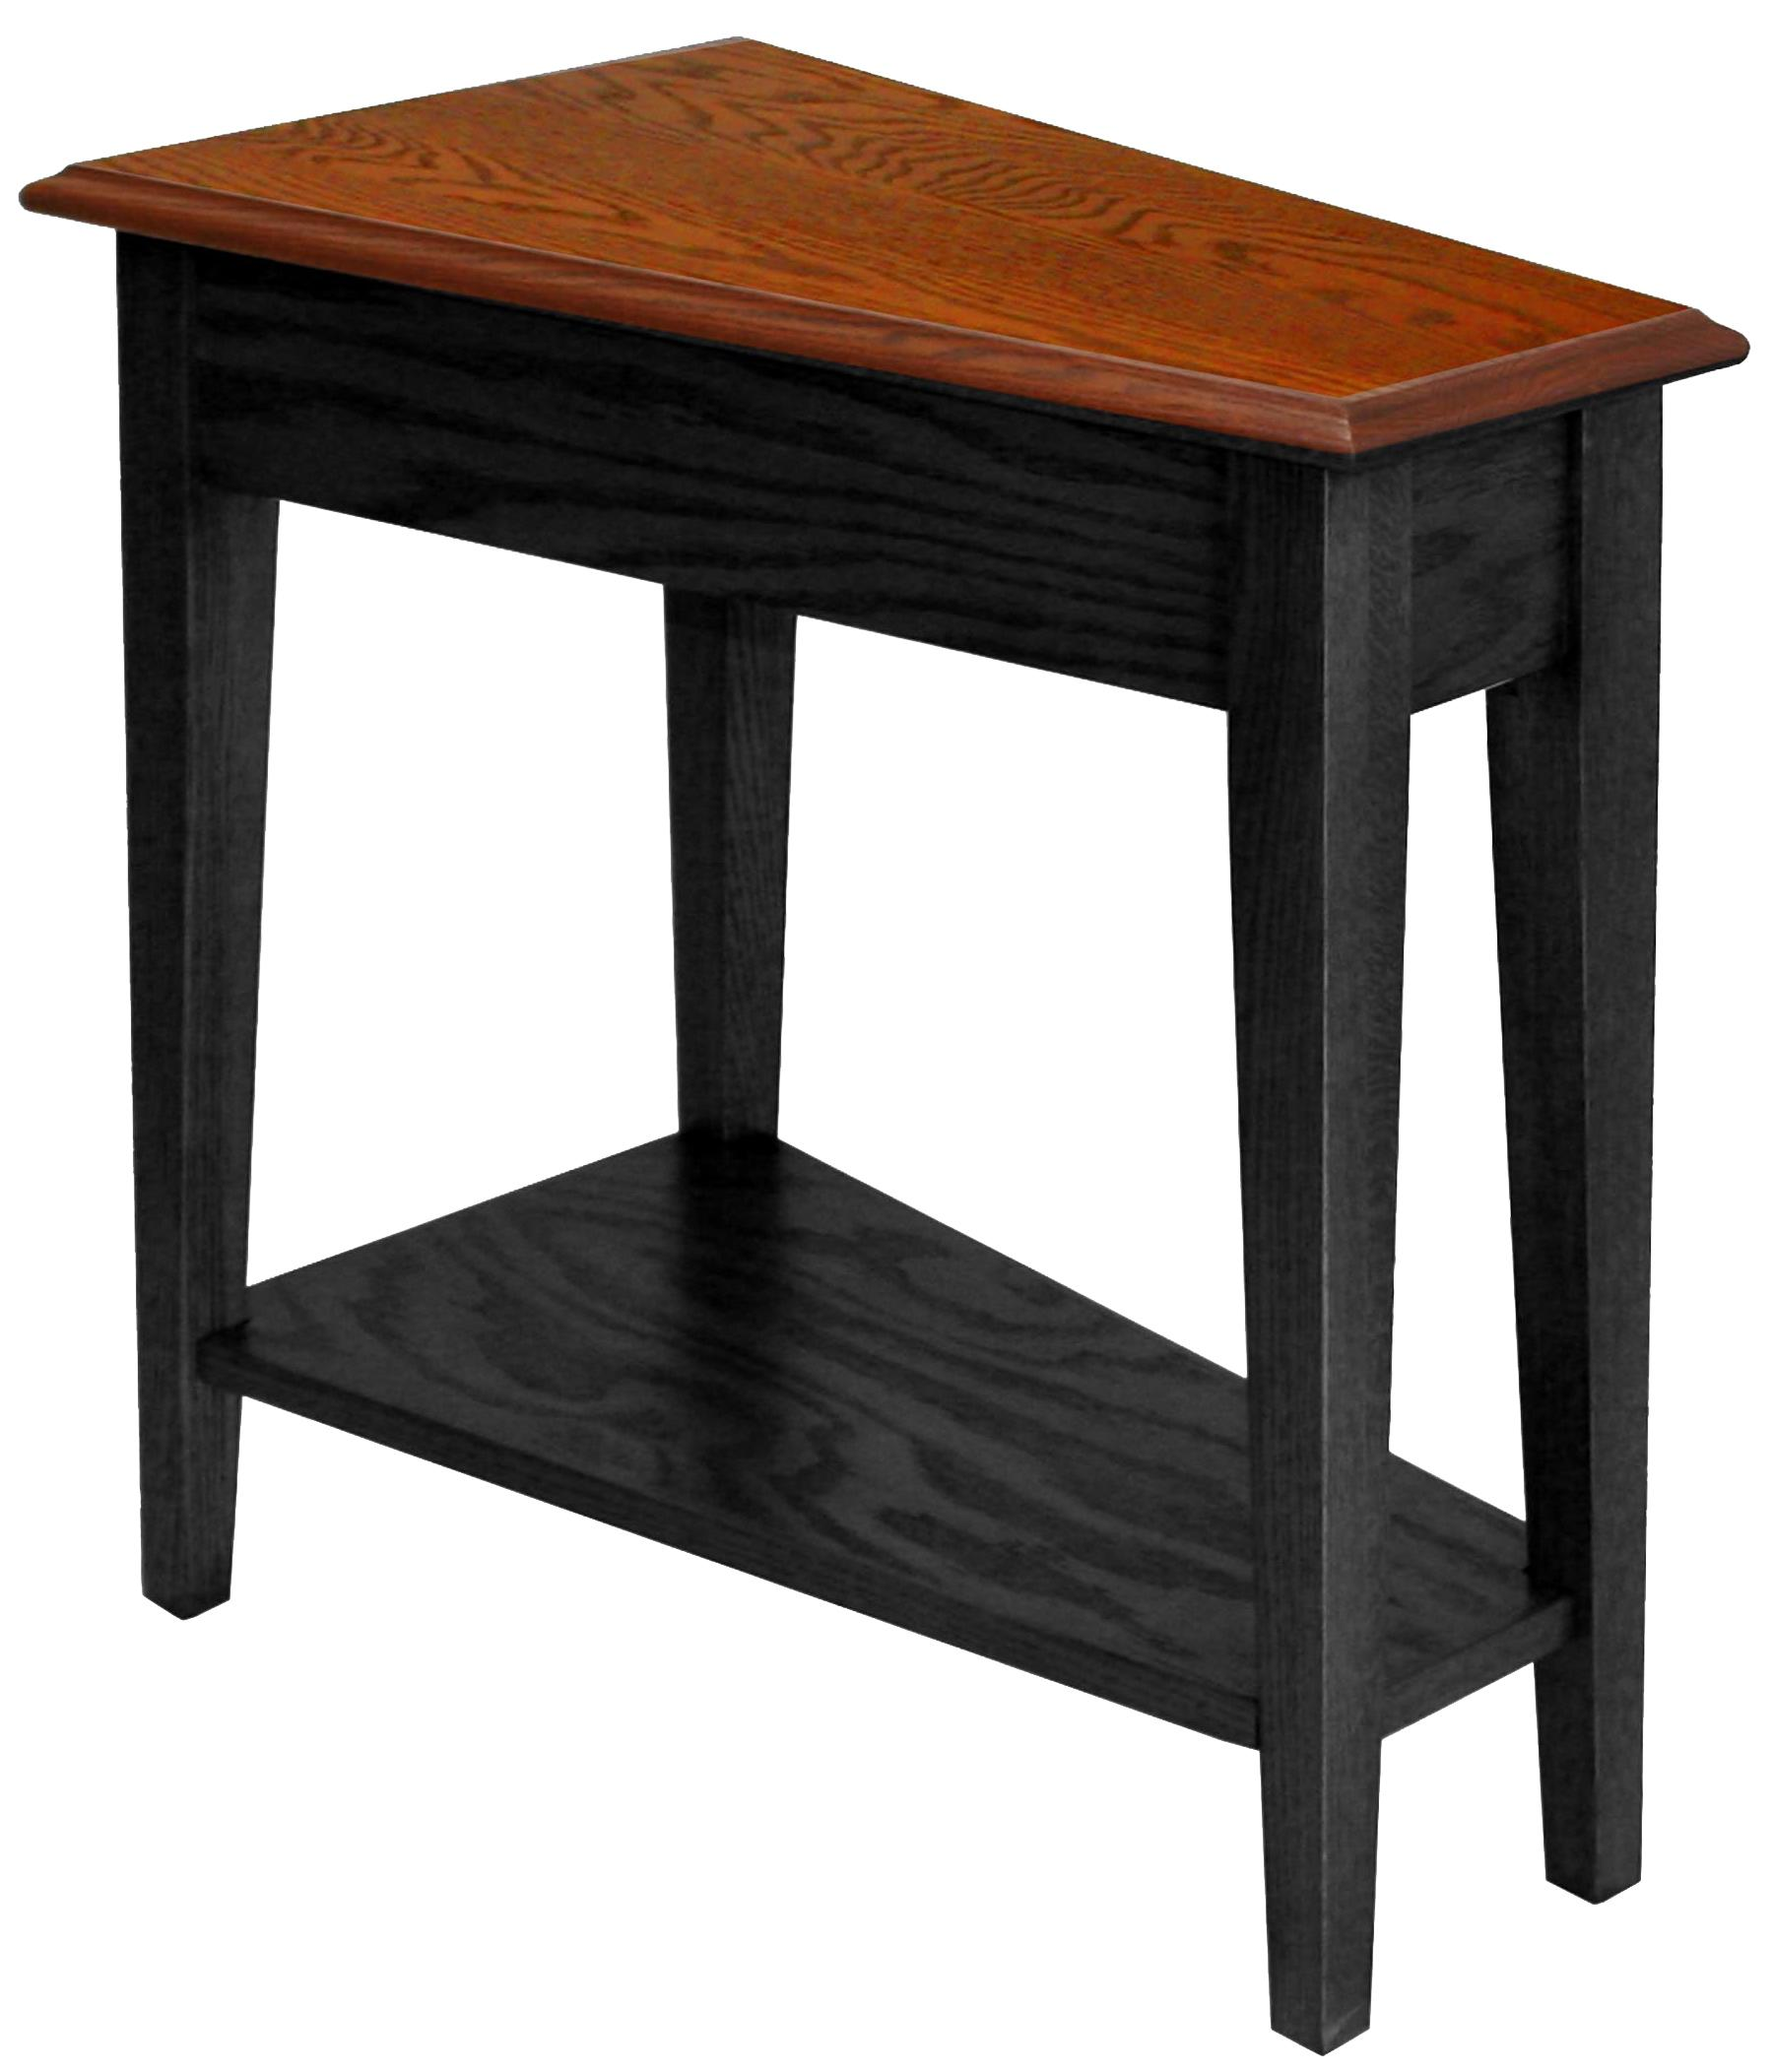 Leick Furniture Favorite Finds Recliner Wedge Table Slate Casual